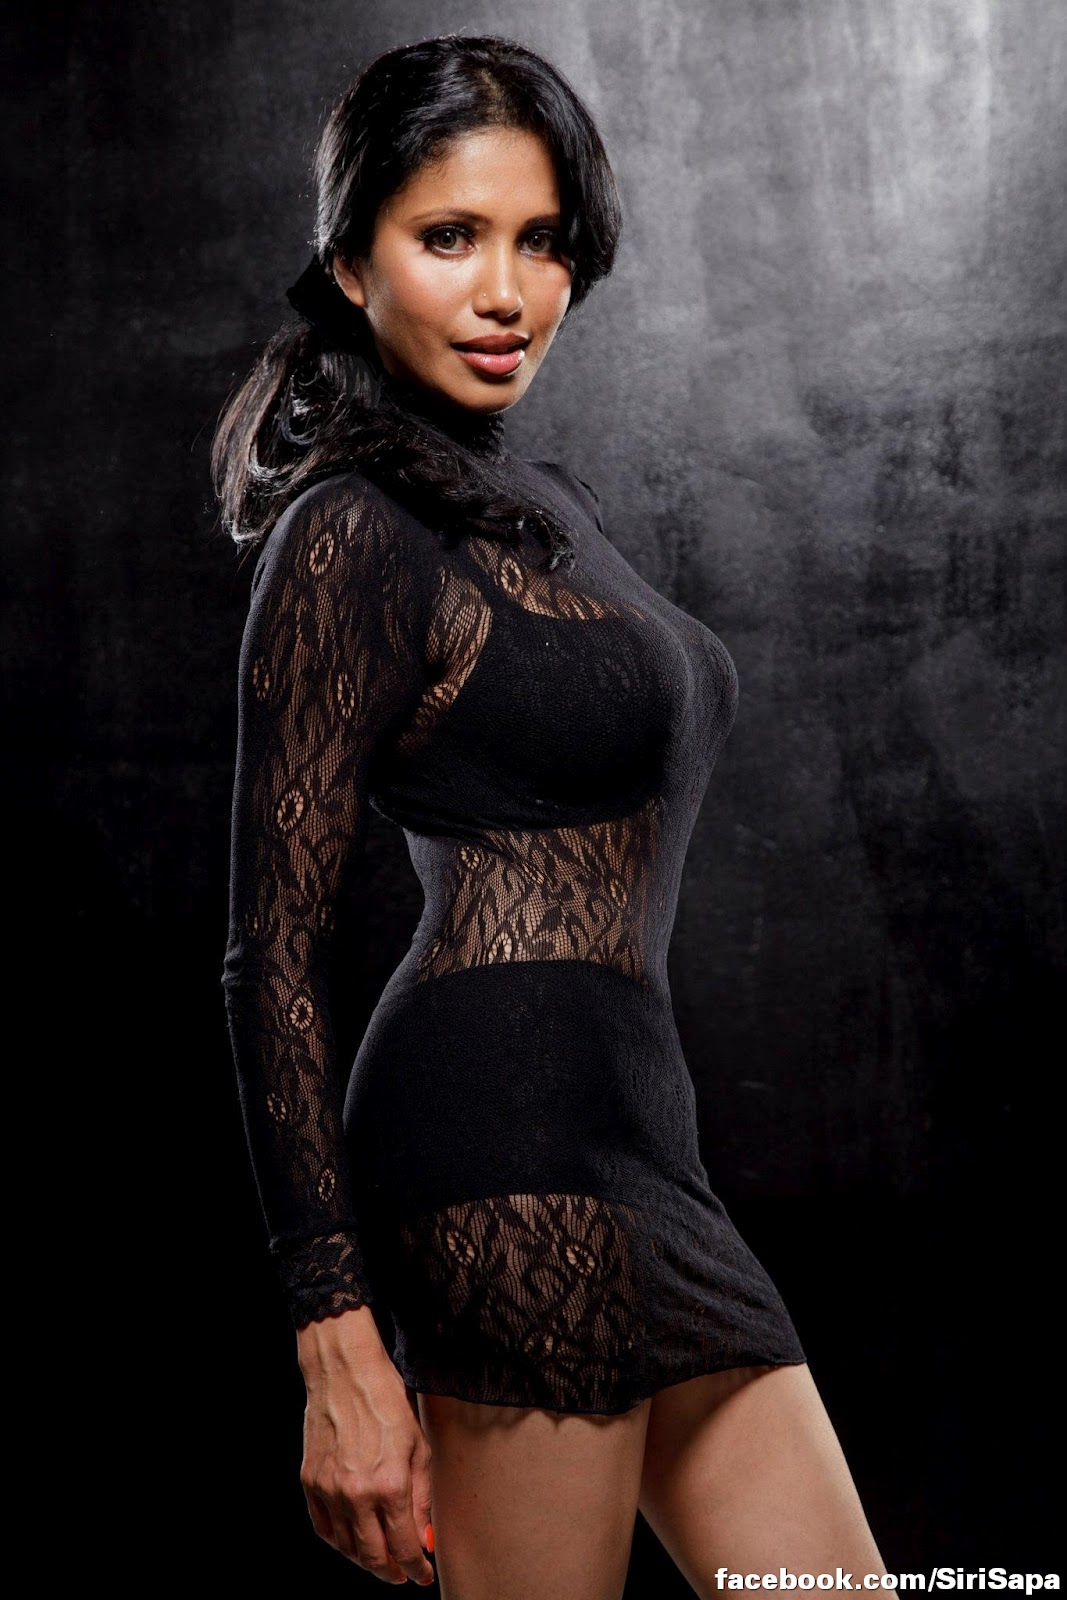 sri lankan model morina dassanayeka sri lankan model morina